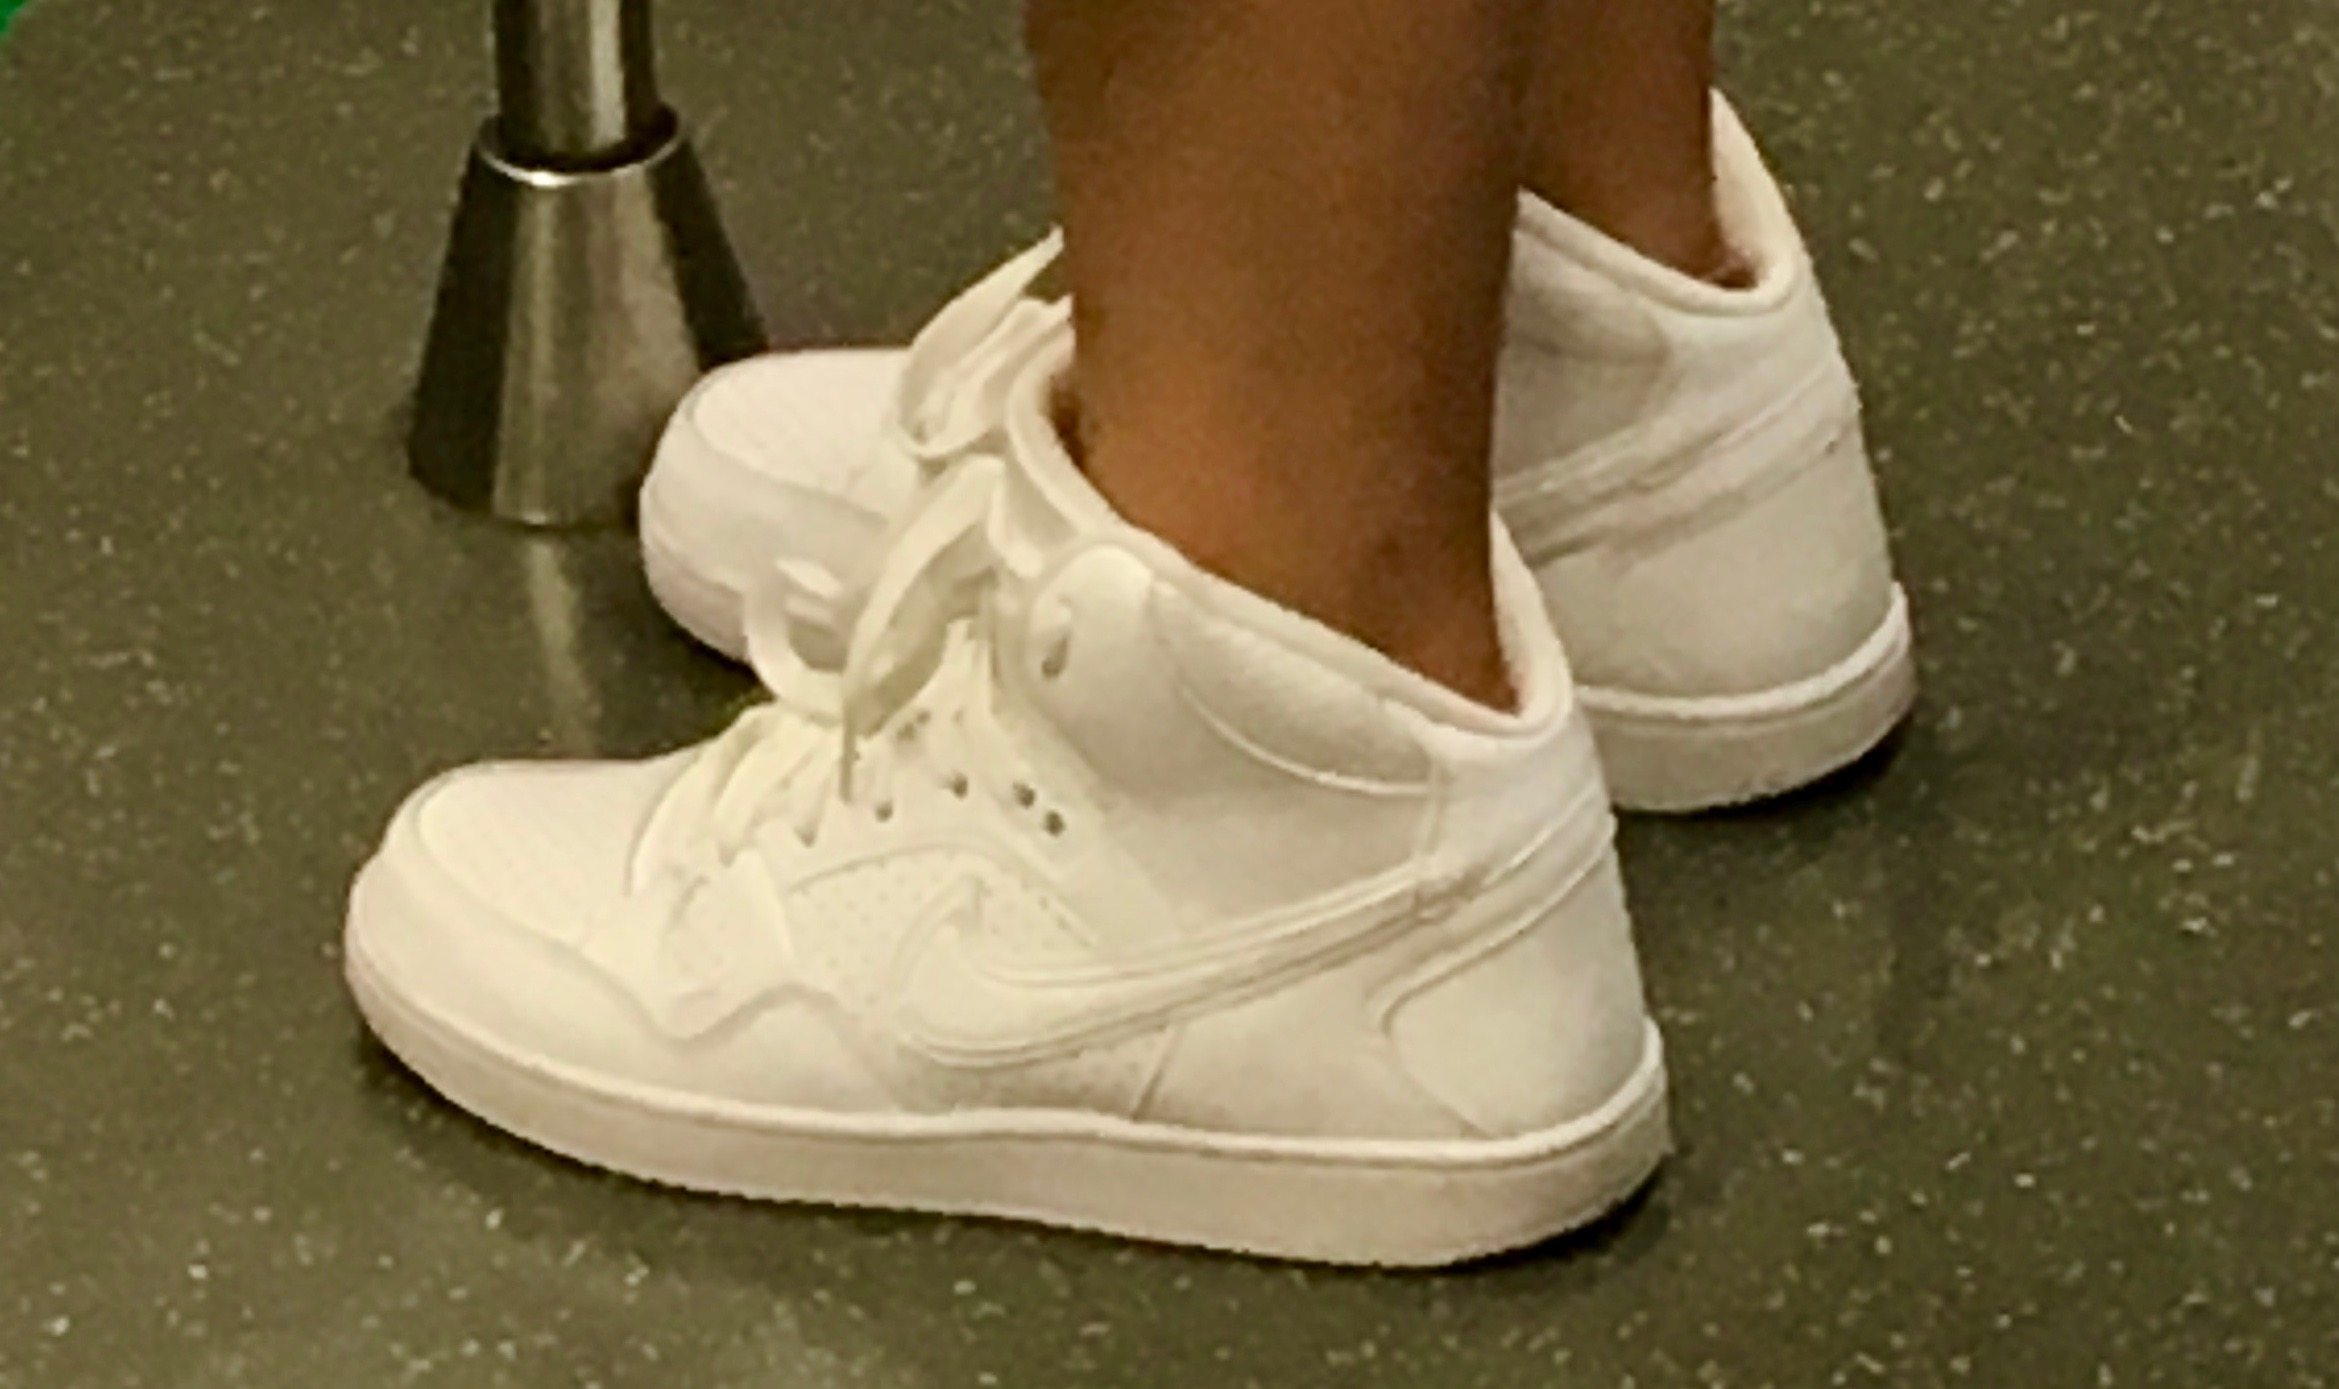 Someone is trying really hard to make a fake less obvious on this one, a subtle double swoosh, but the last and sole are off too. Nice try!